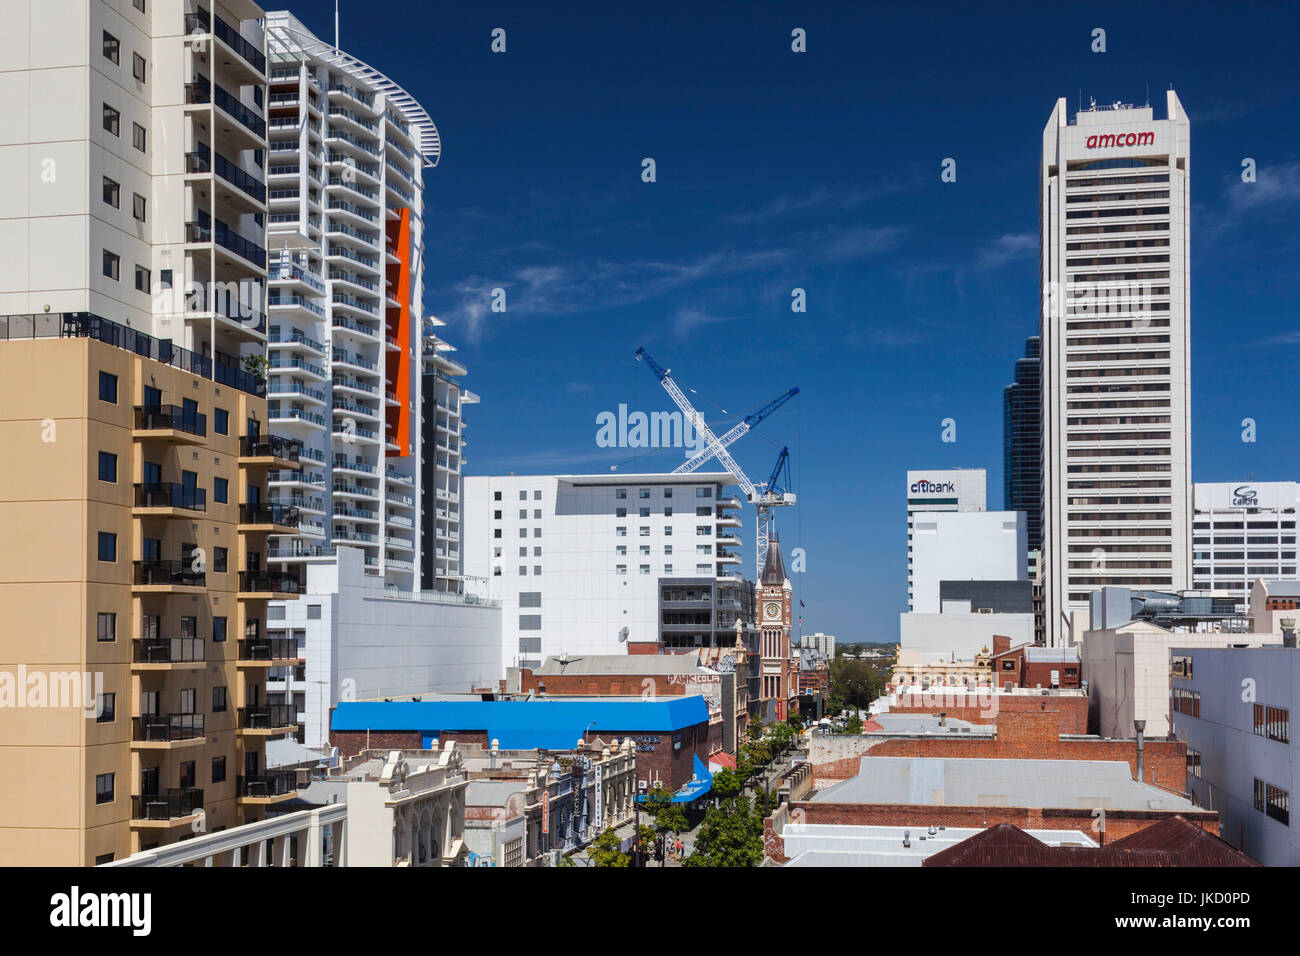 Australia, Western Australia, Perth, buildings along Barrack Street, elevated view - Stock Image